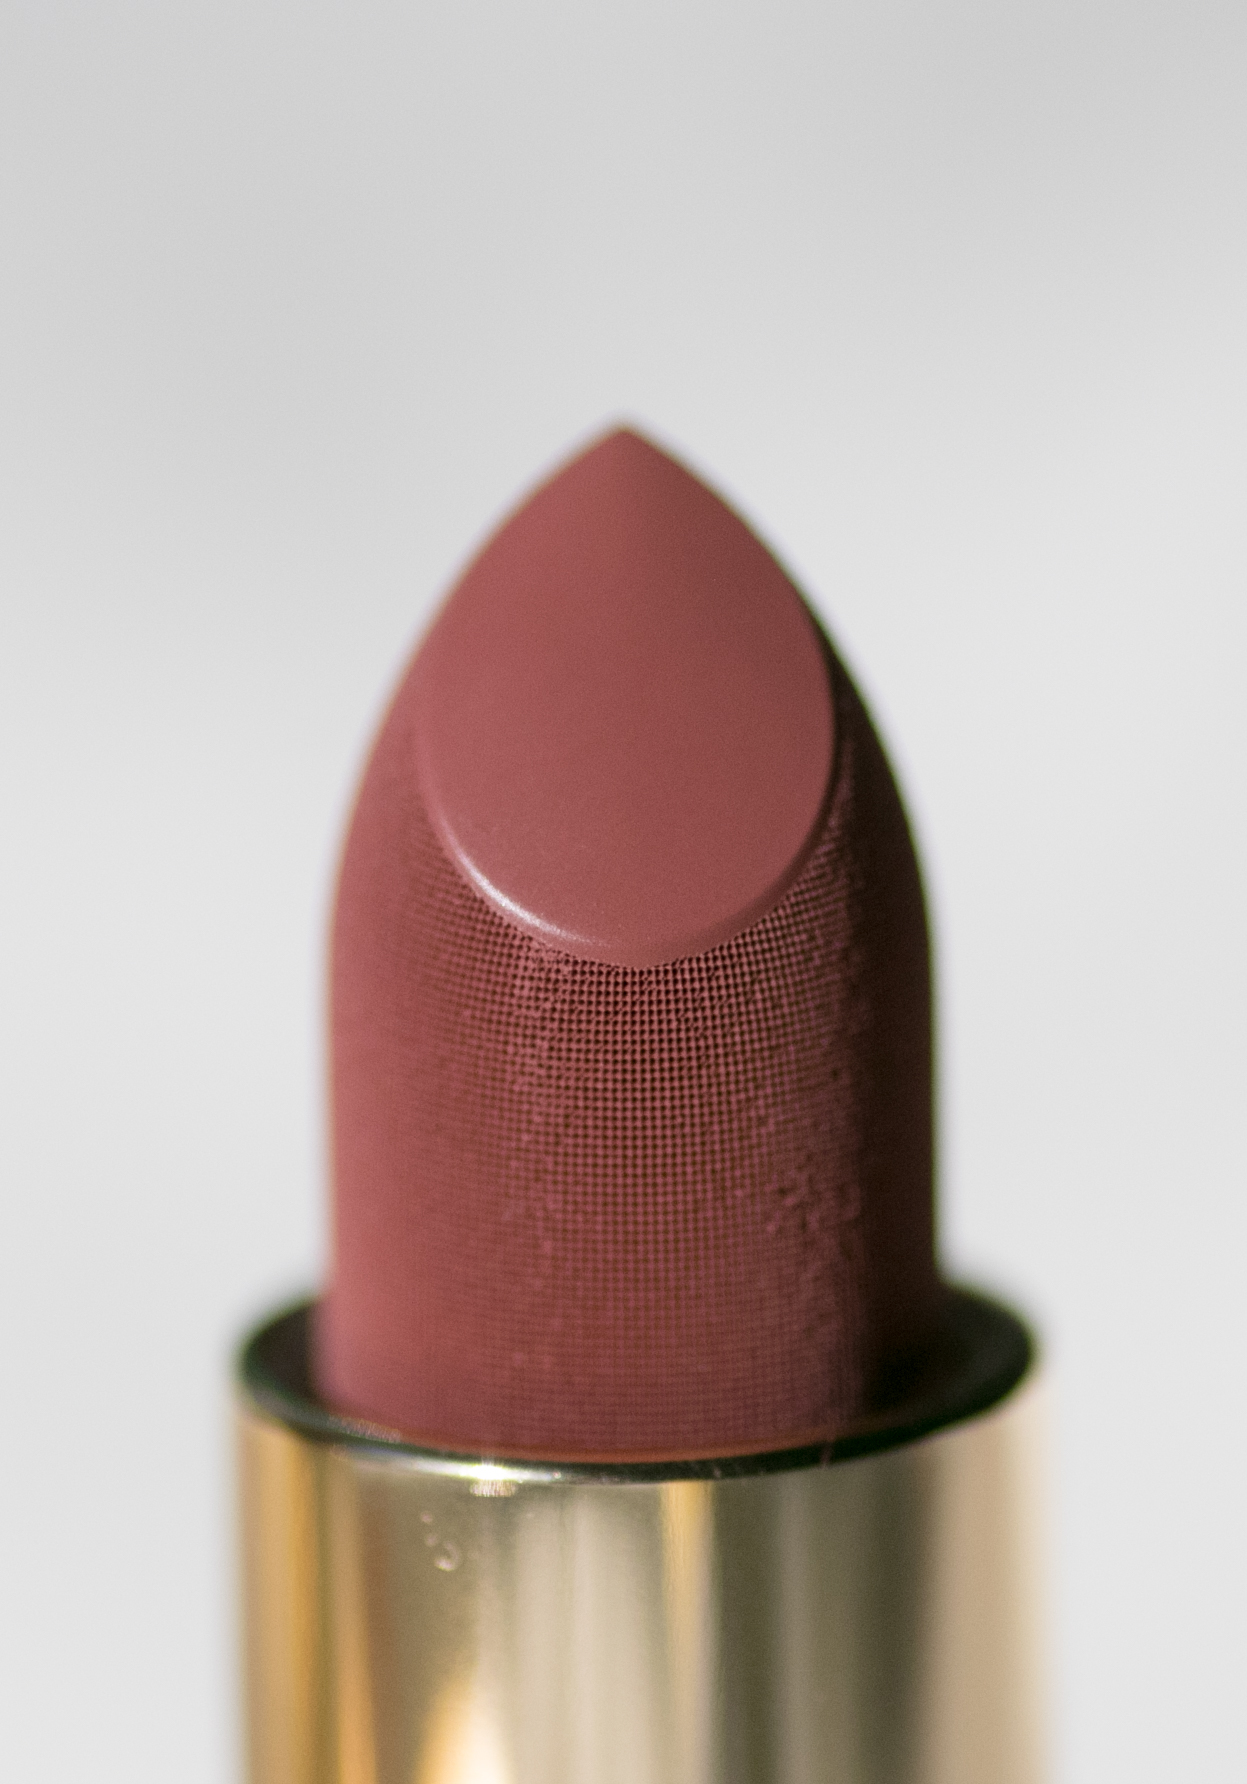 Lisa Eldridge True Velvet Lip Colour in Velvet Muse